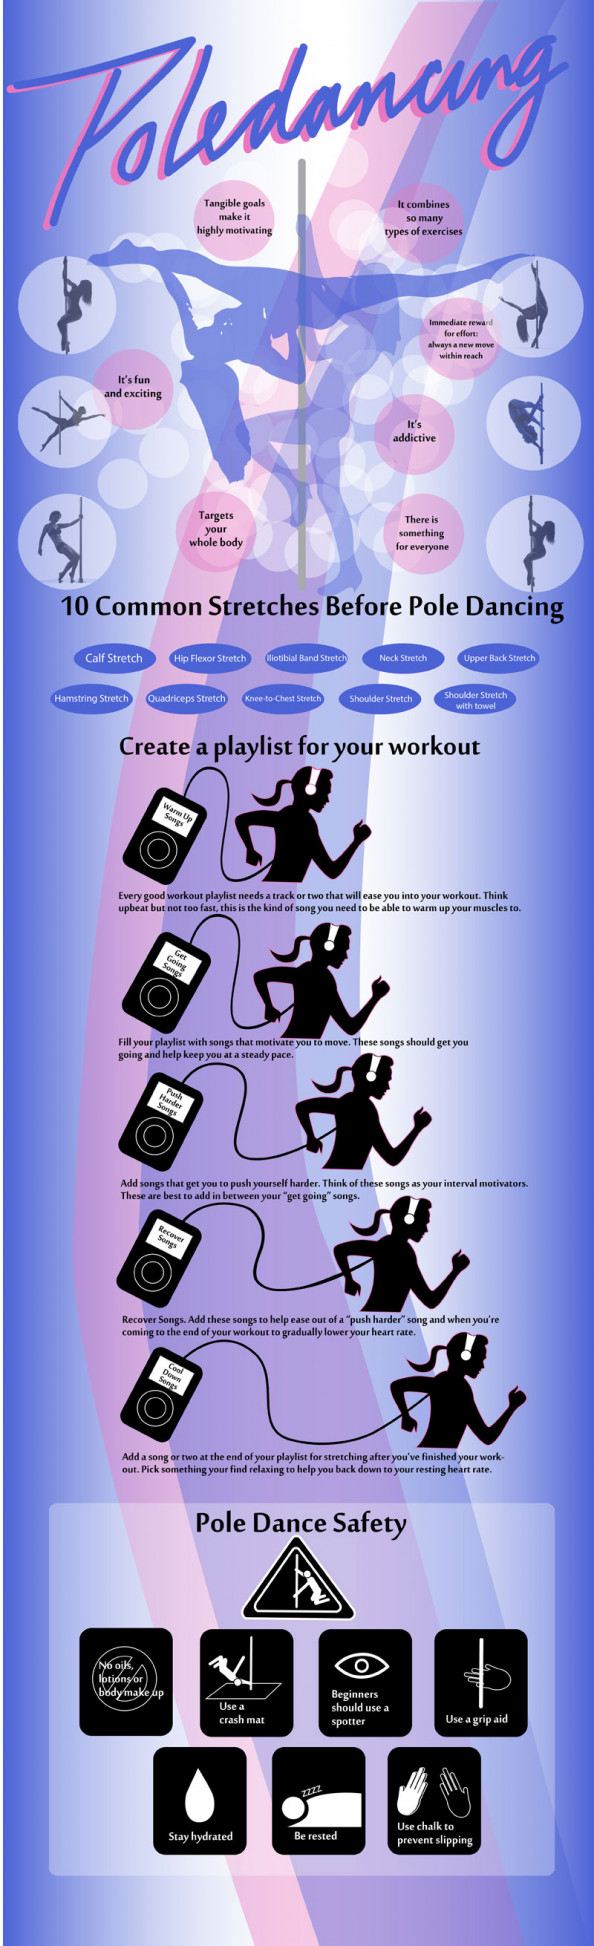 Pole Dancing Needing Attention Infographic